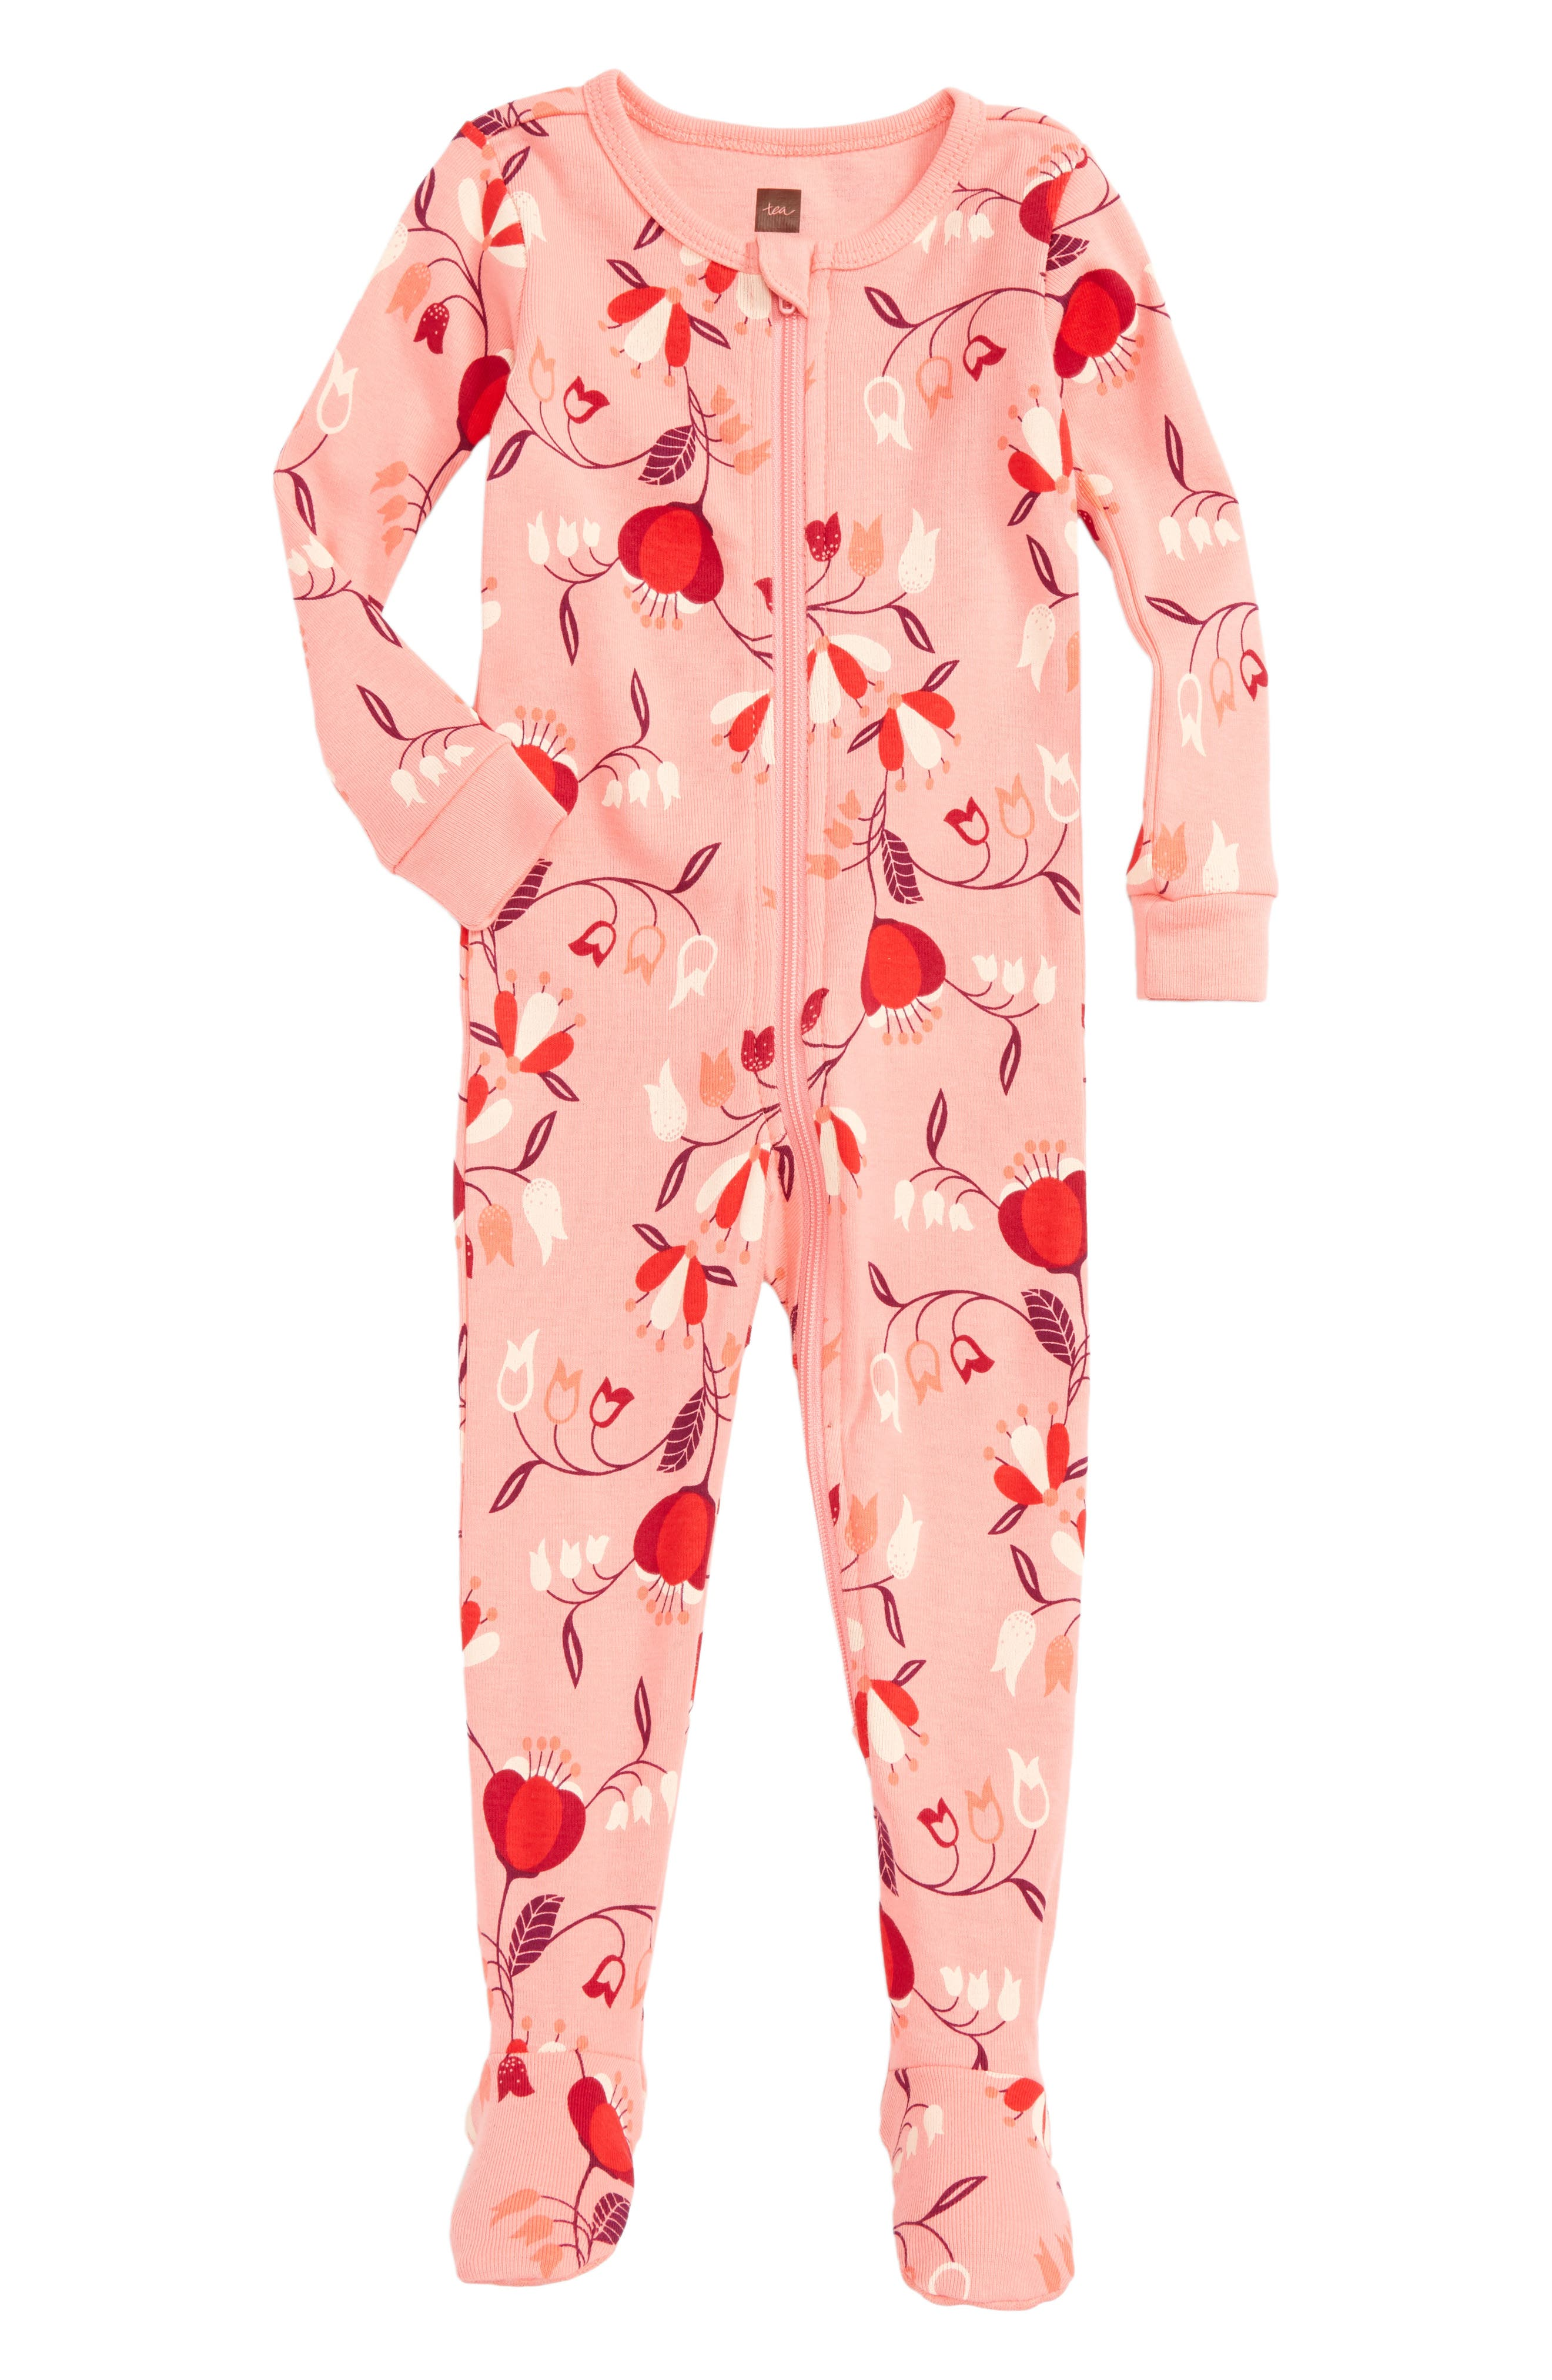 Tea Collection Caer Fitted One-Piece Pajamas (Baby Girls)